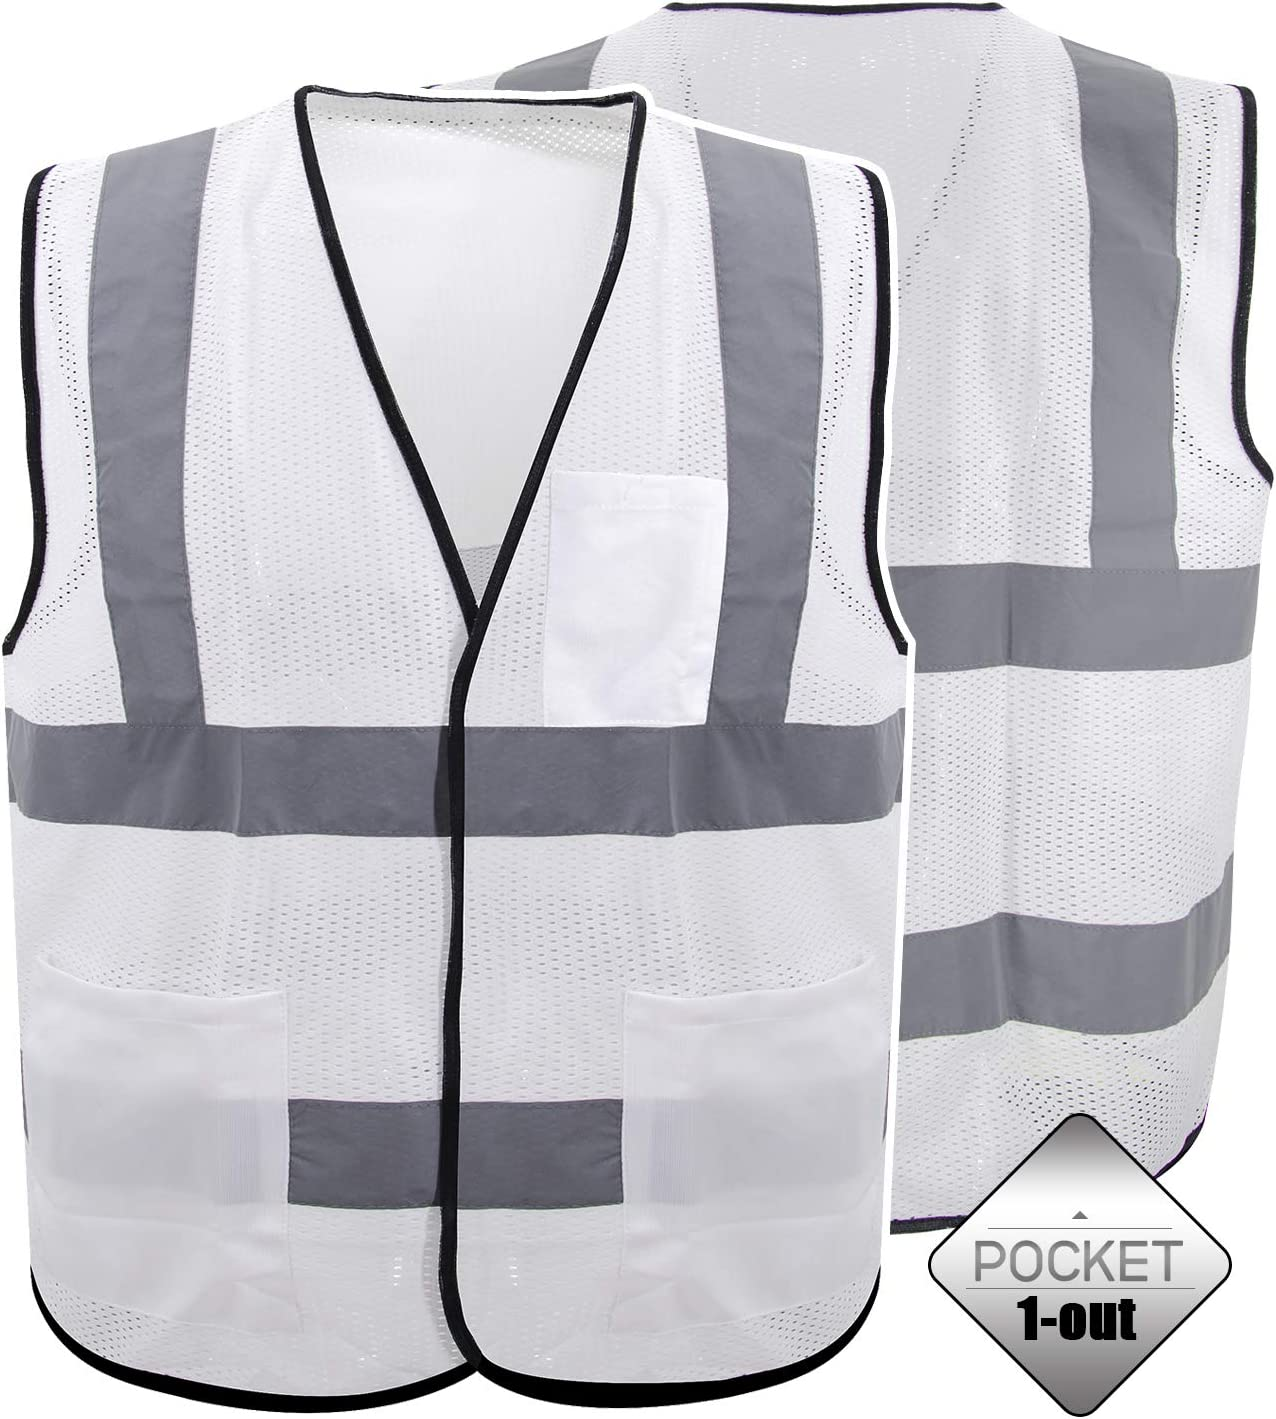 utility workers Zipper closure, Pack of 5 and emergency response personnel Ideal for roadway construction workers survey crews railway and metro workers Worktex Safety WT53005 Safety Vest Designed to ANSI 2015 standards Breathable polyester mesh